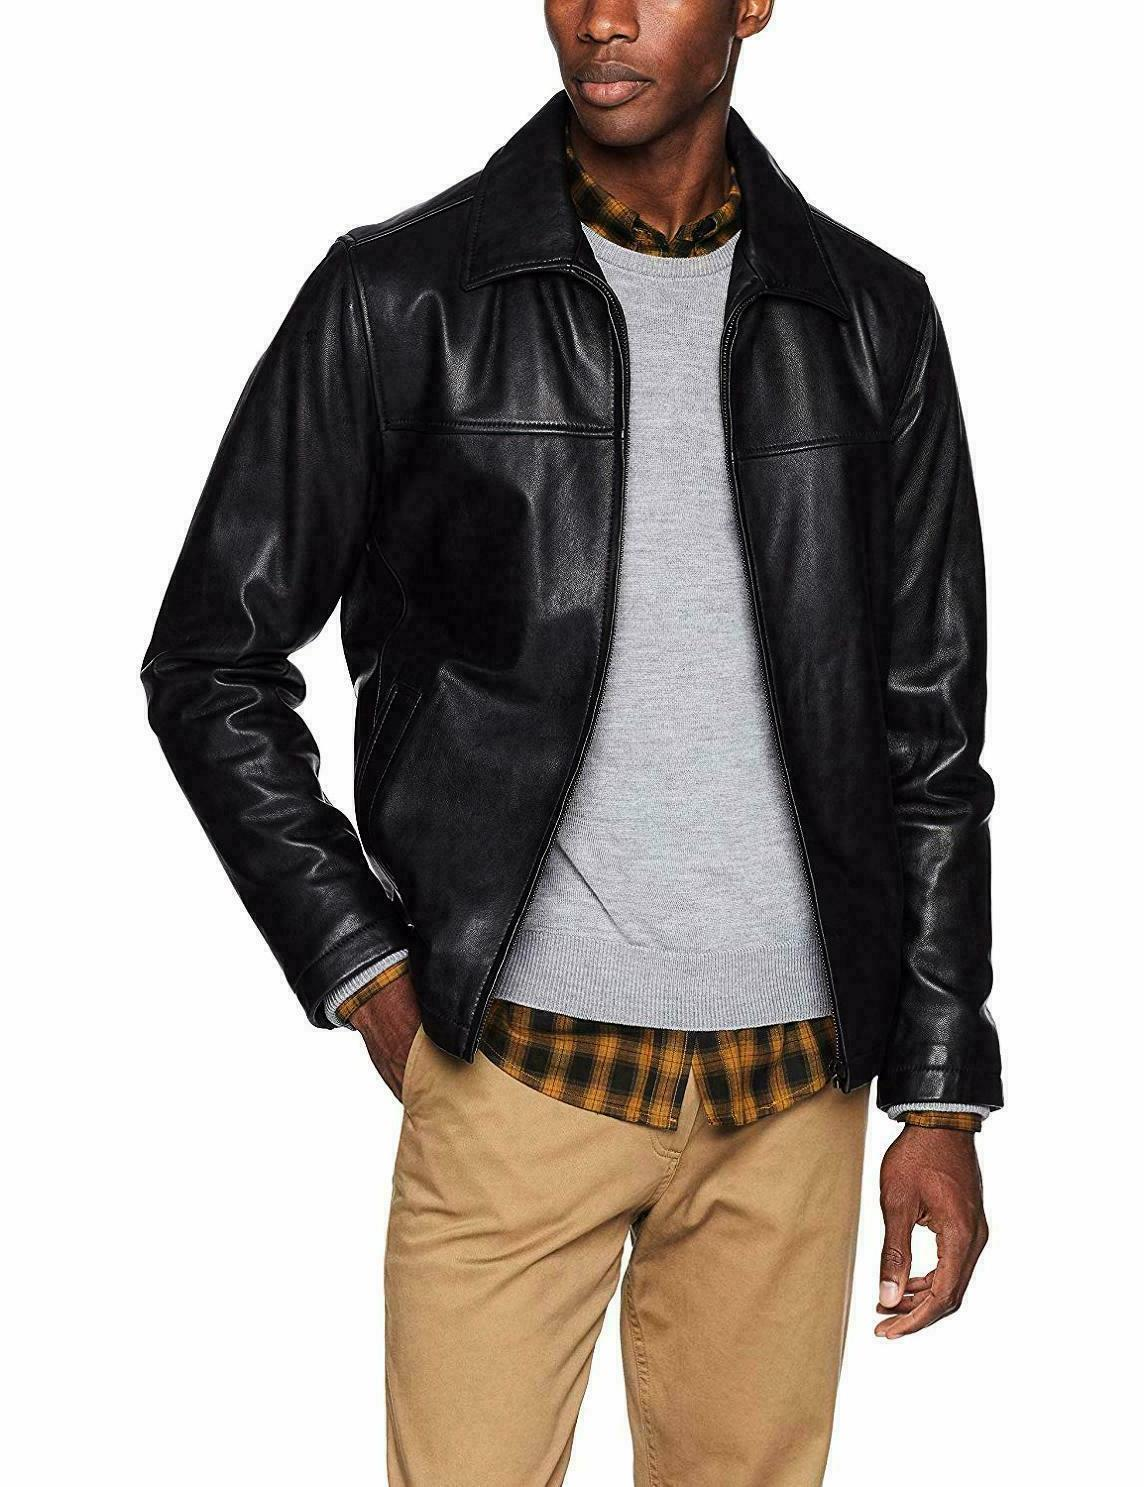 Tommy Hilfiger Leather Jacket With Collar XXL 153A2850